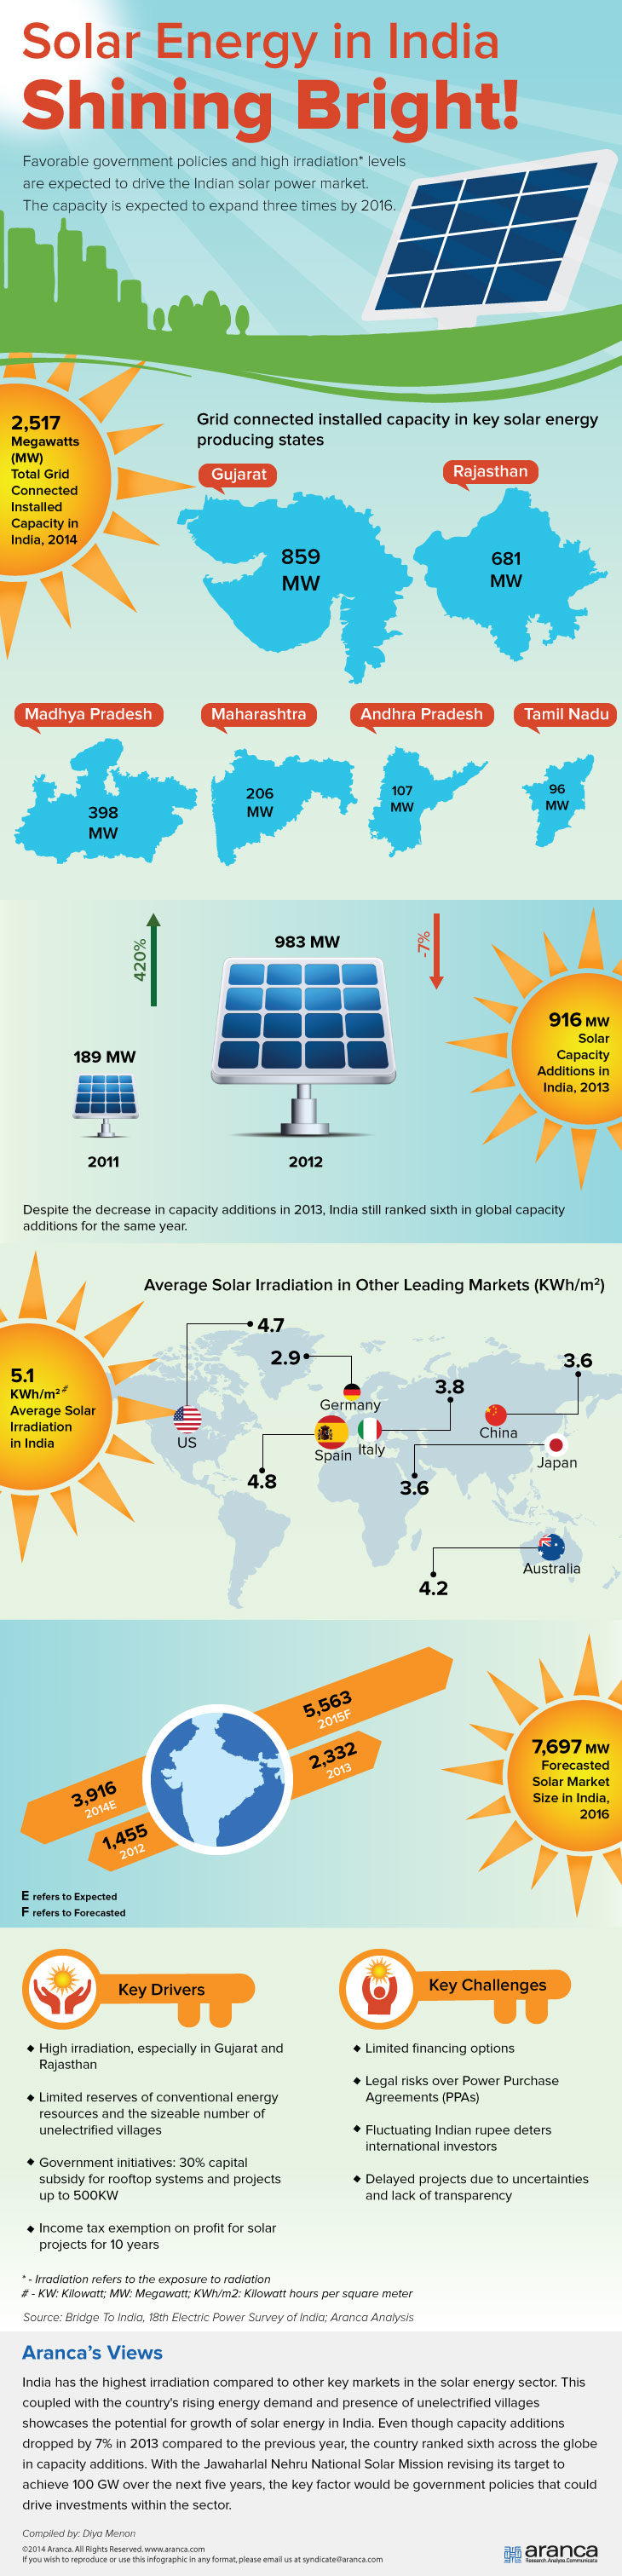 Indian Solar Energy Market